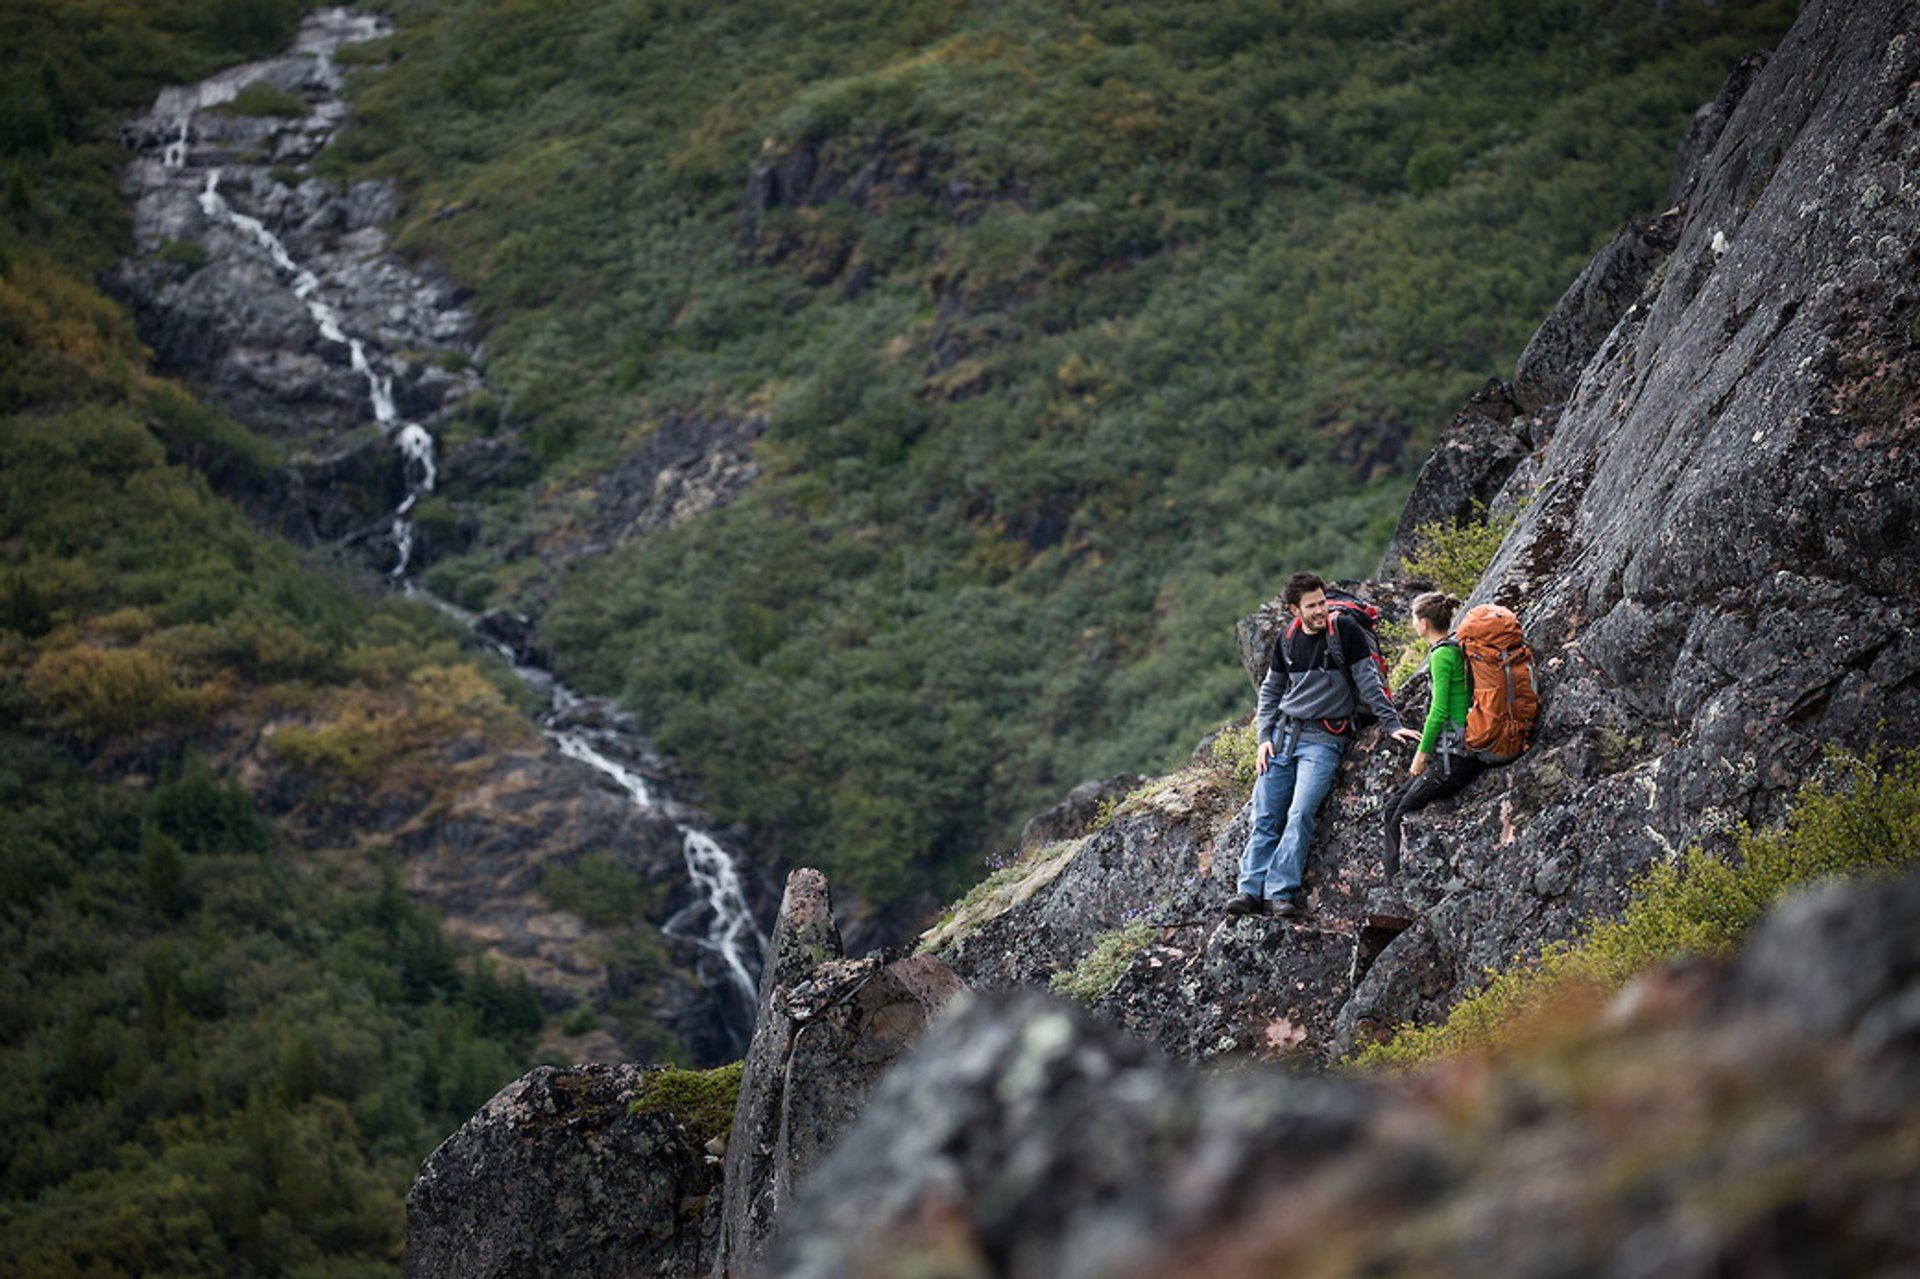 Hikers near a waterfall in Narsarsuaq